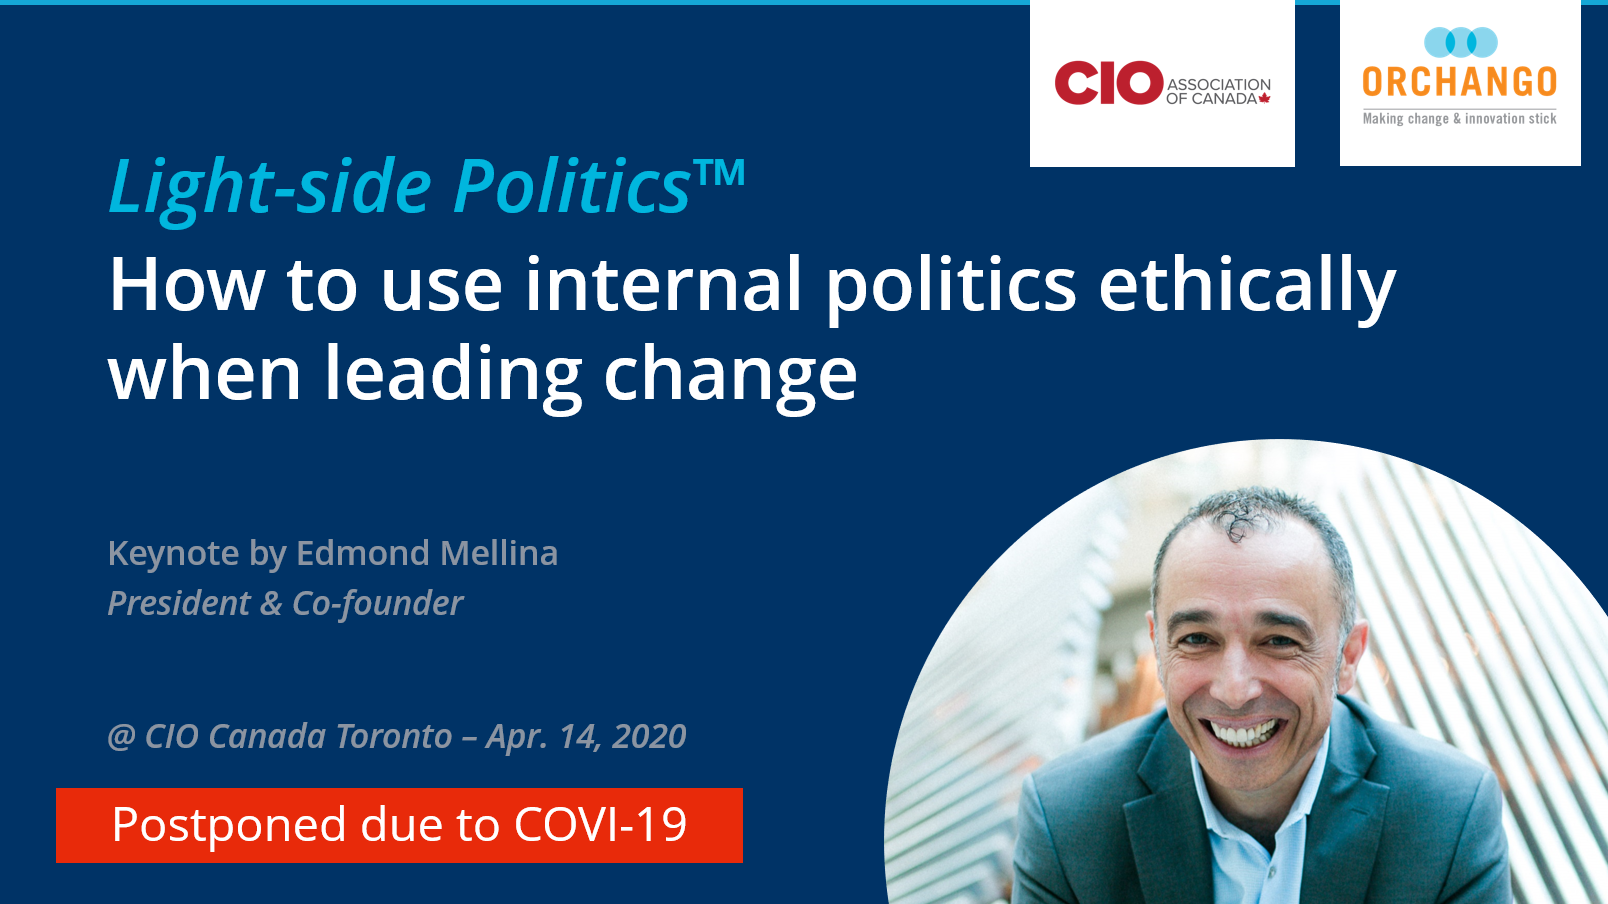 Keynote CIO Canada - Light-side Politics April 2020 Postponed Due To COVID-19